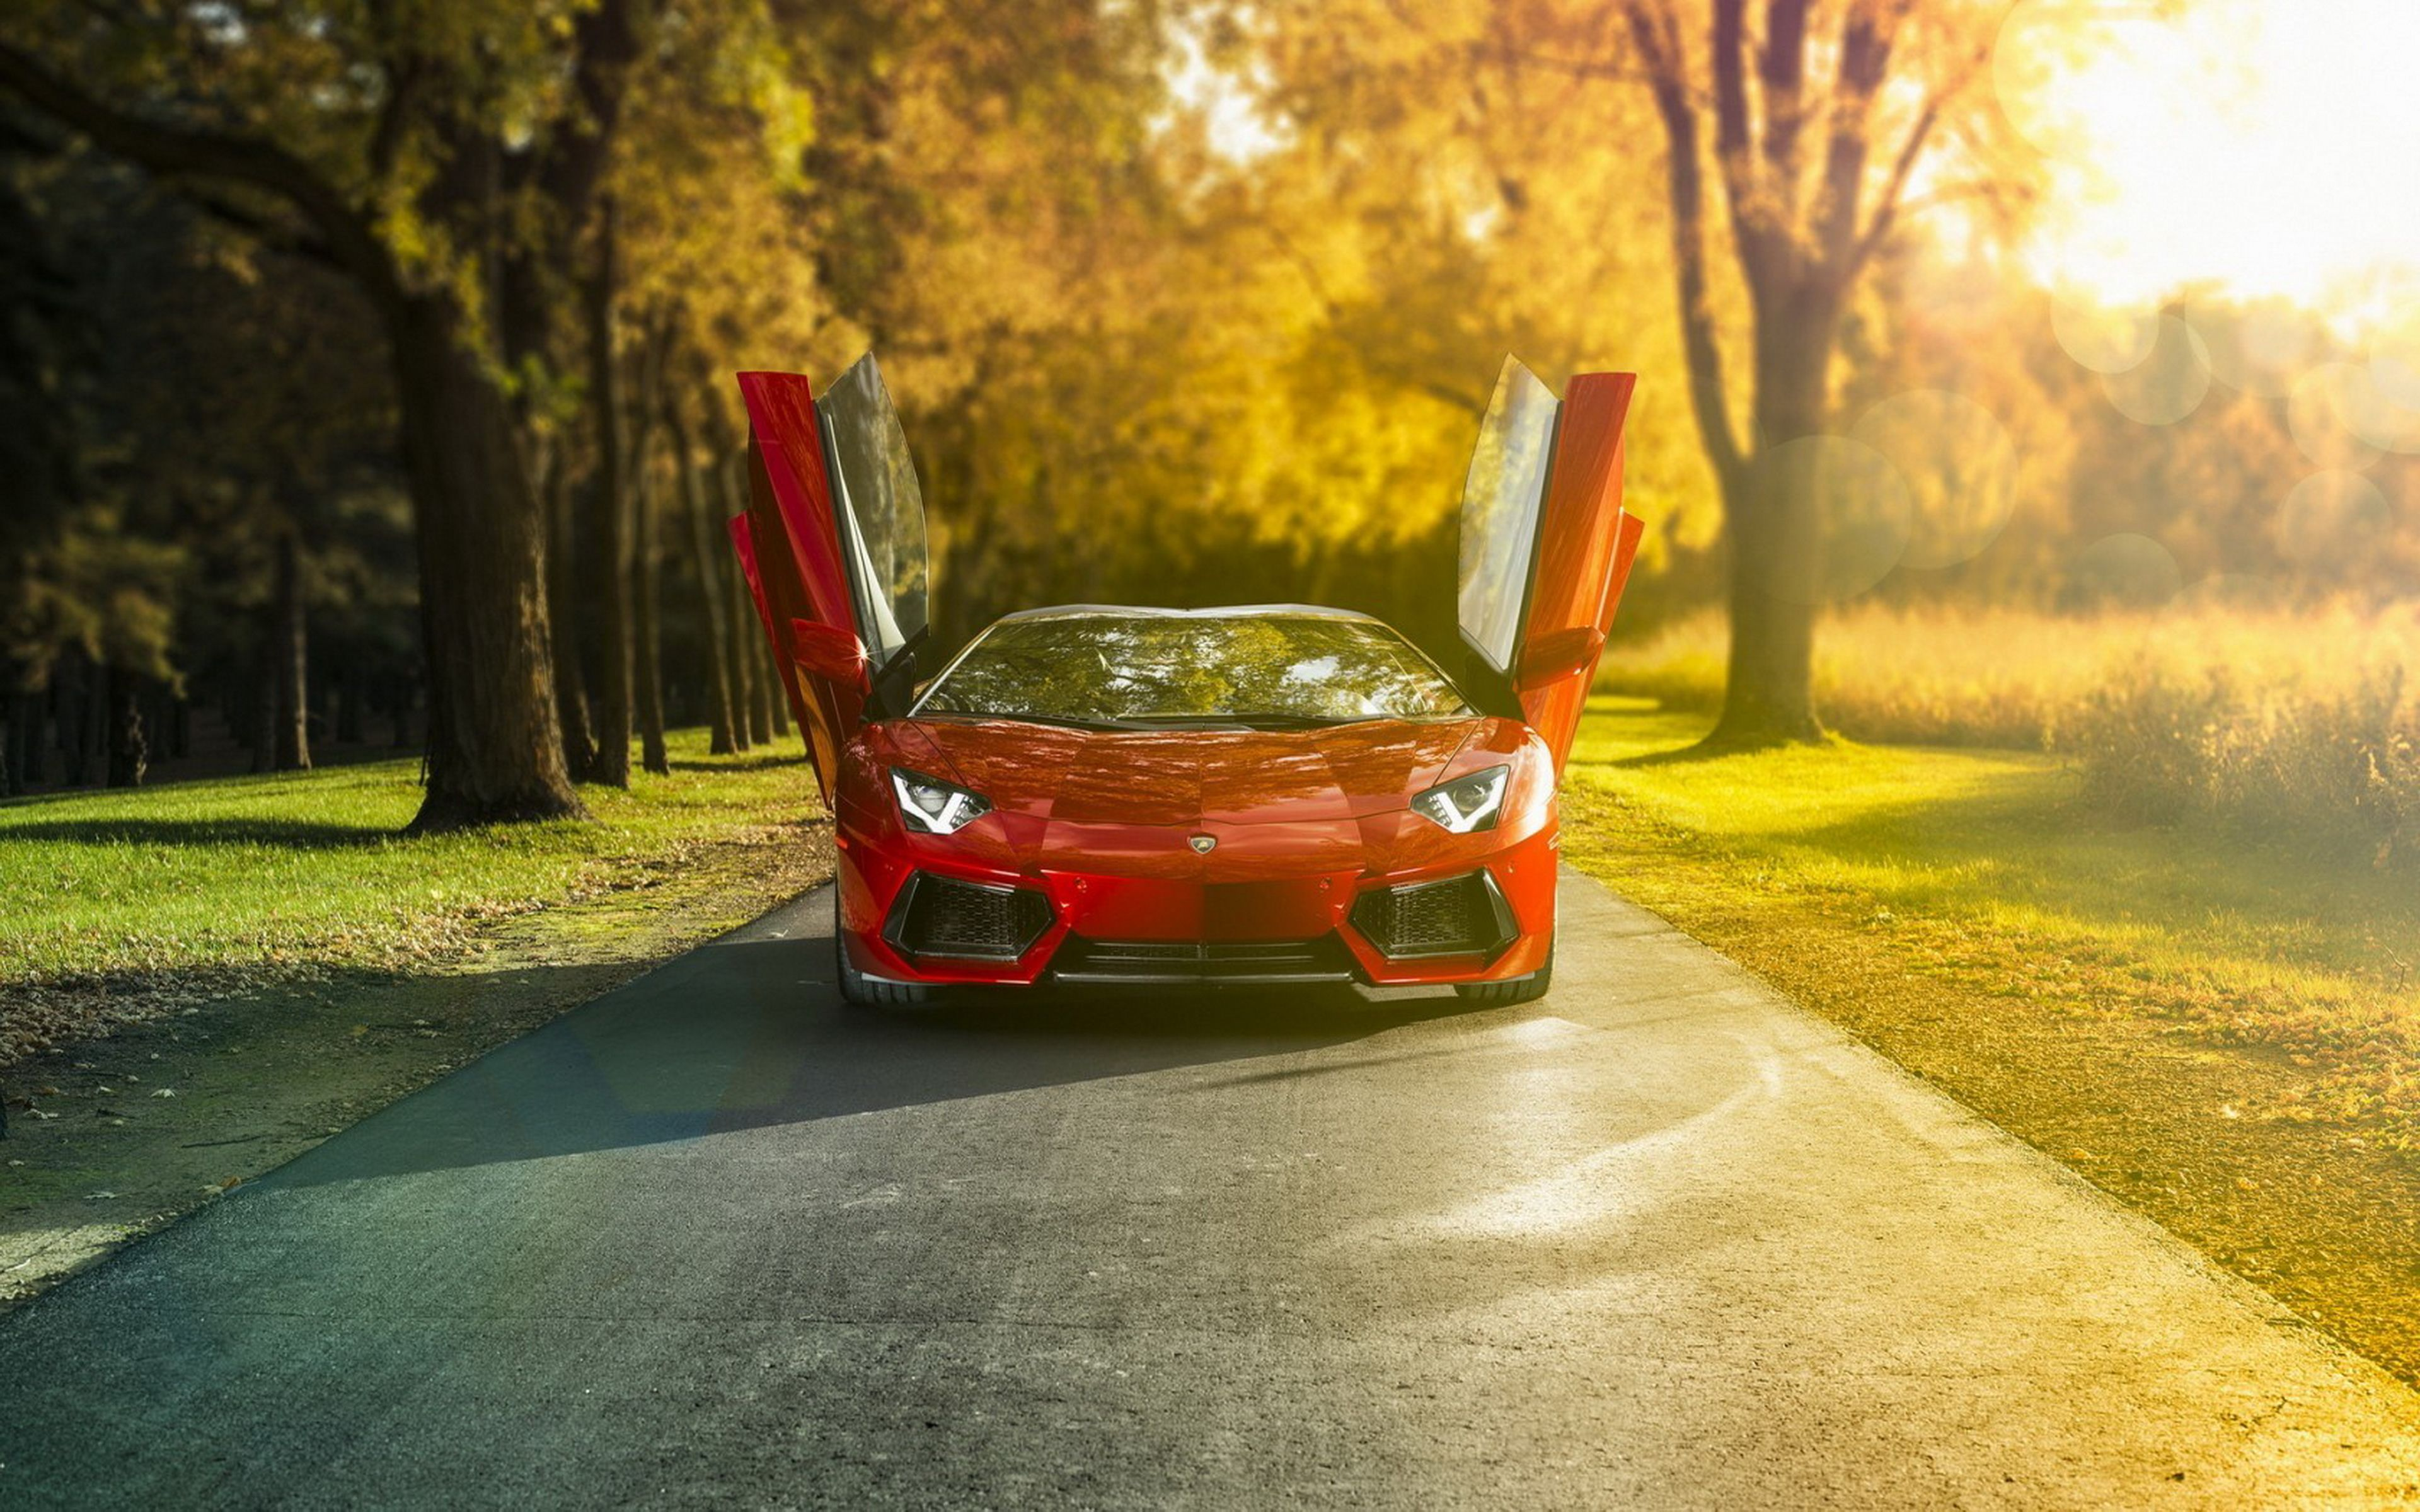 Road Angle Lamborghini Aventador Lp 700 4 Autumn Street Wallpaper